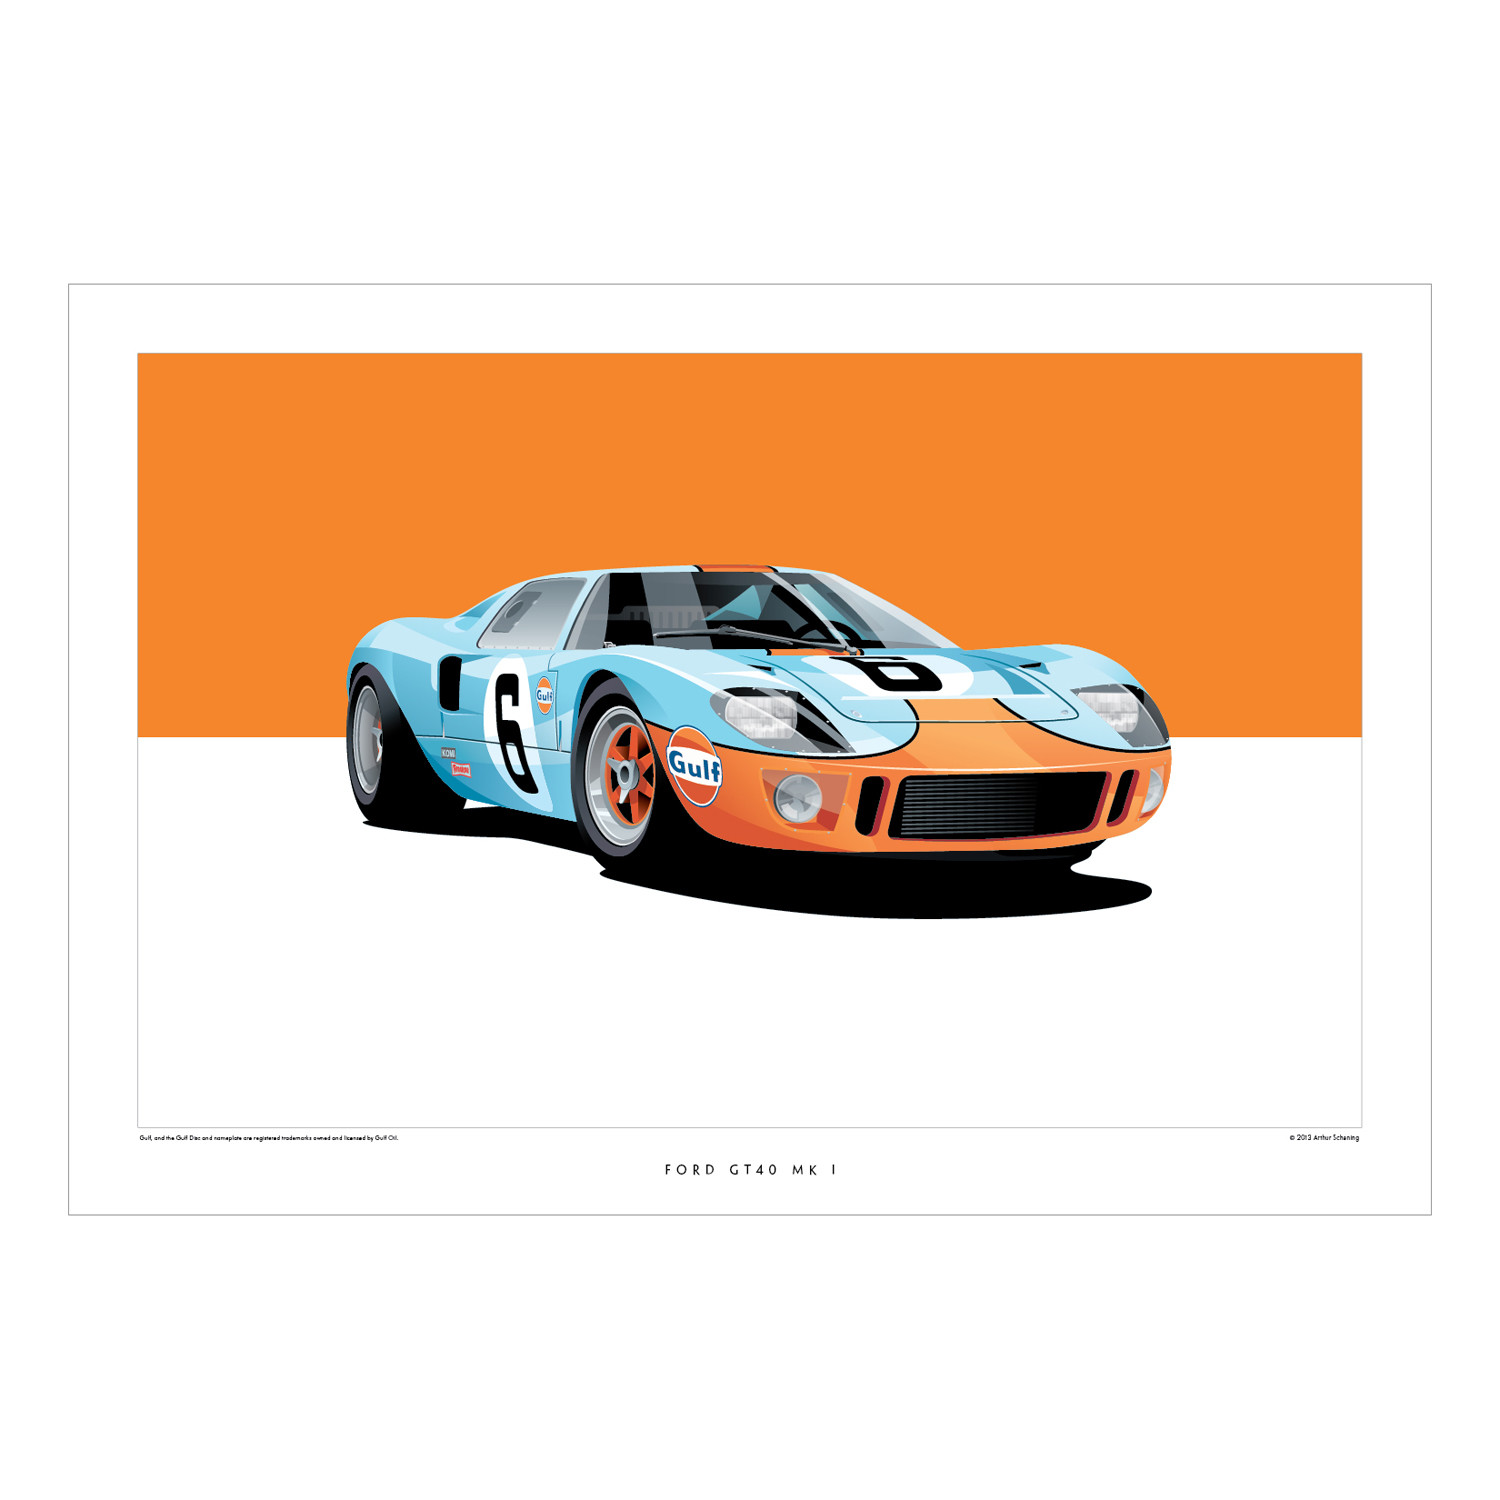 Ford GT40 Mk1 - ScheningCreative - Touch of Modern